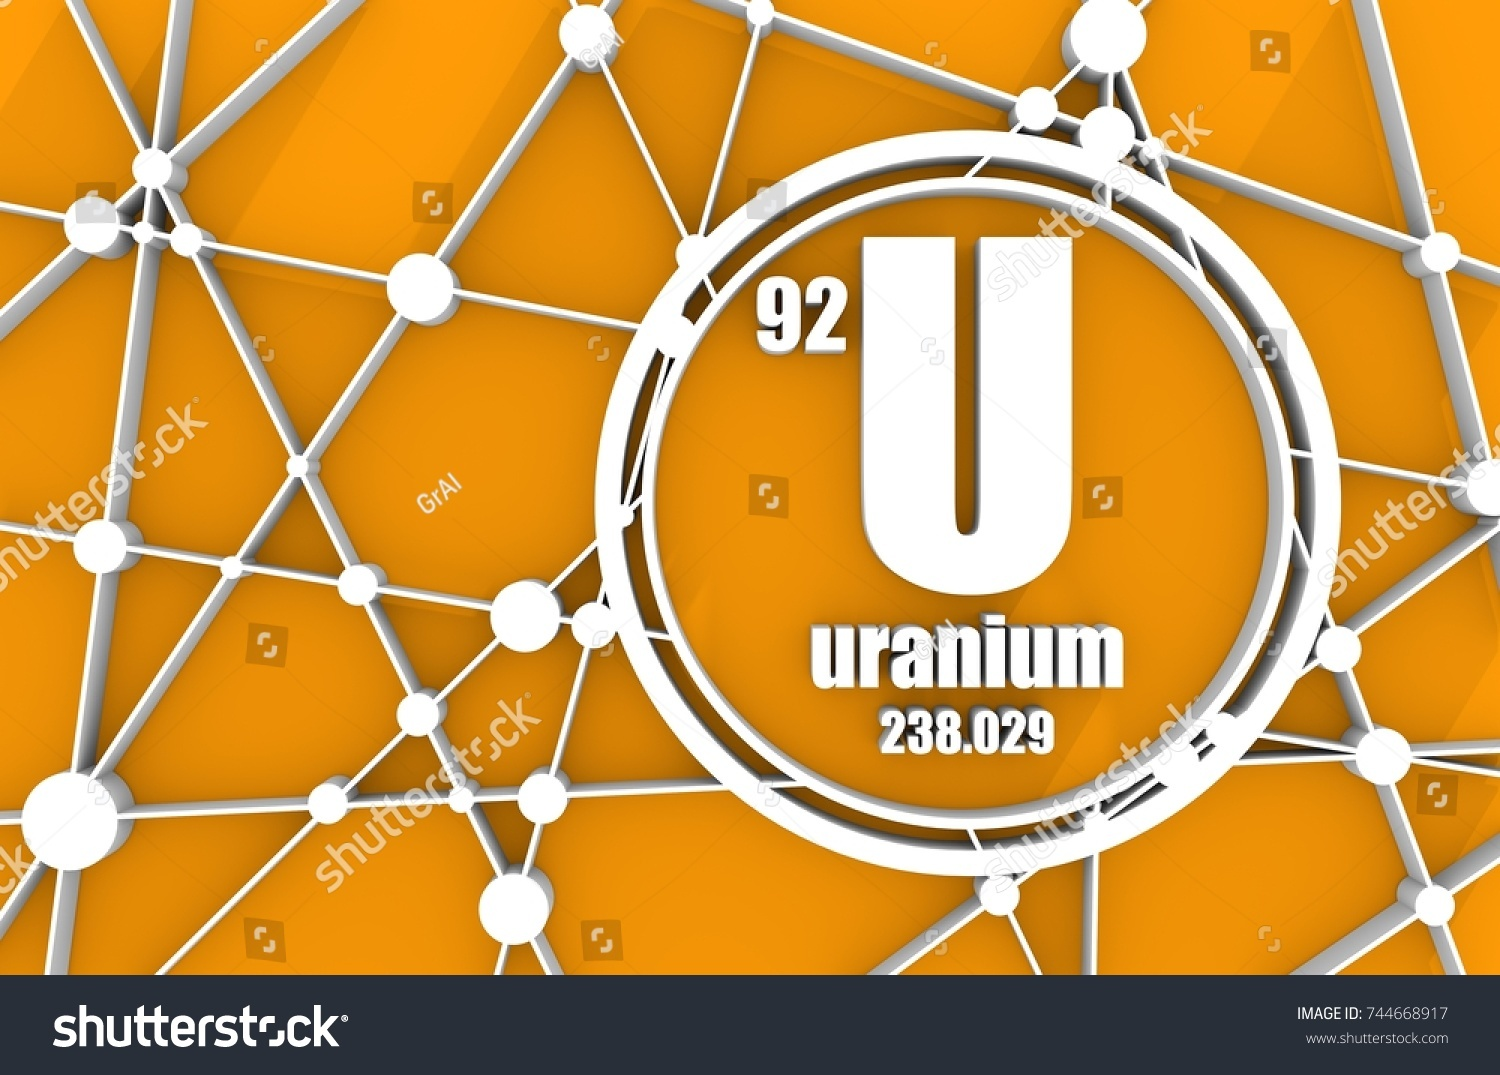 Uranium chemical element sign atomic number stock illustration sign with atomic number and atomic weight chemical element of periodic gamestrikefo Choice Image